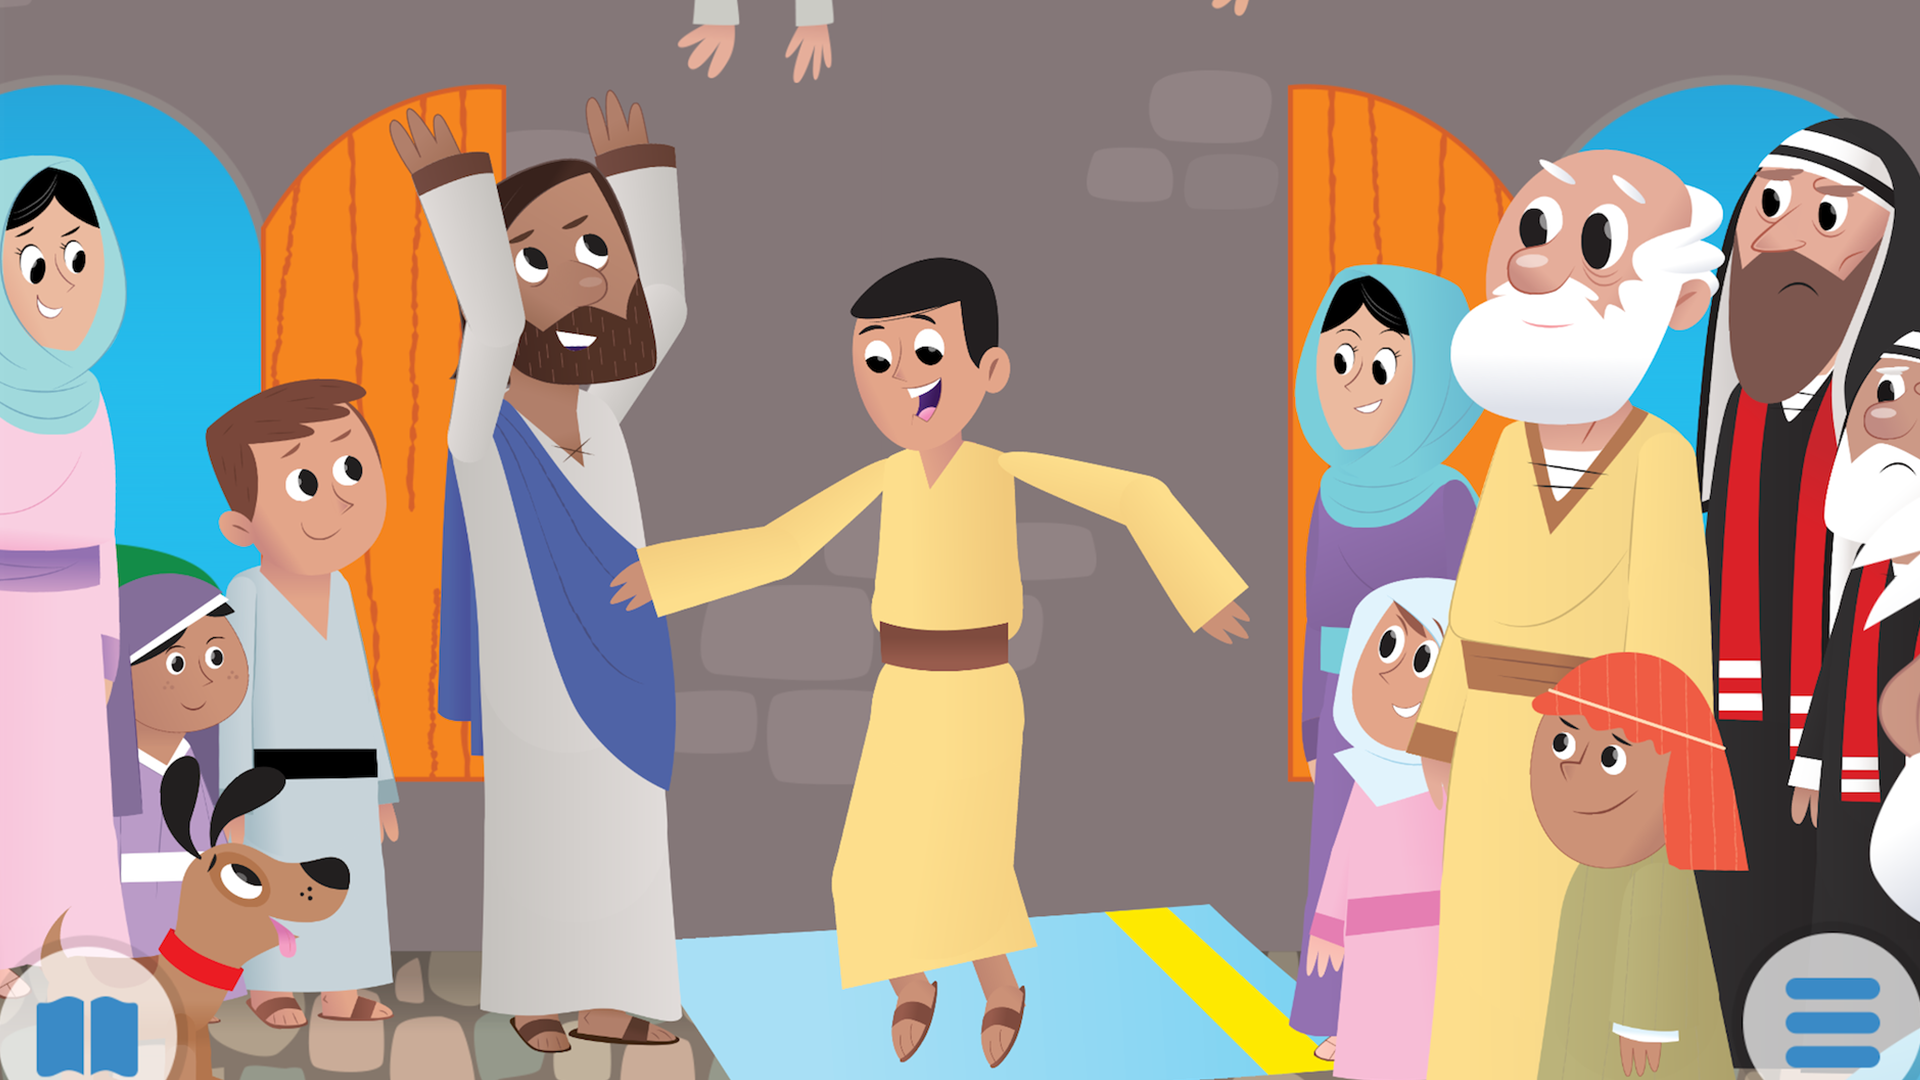 bible story images for kids google search through the roof